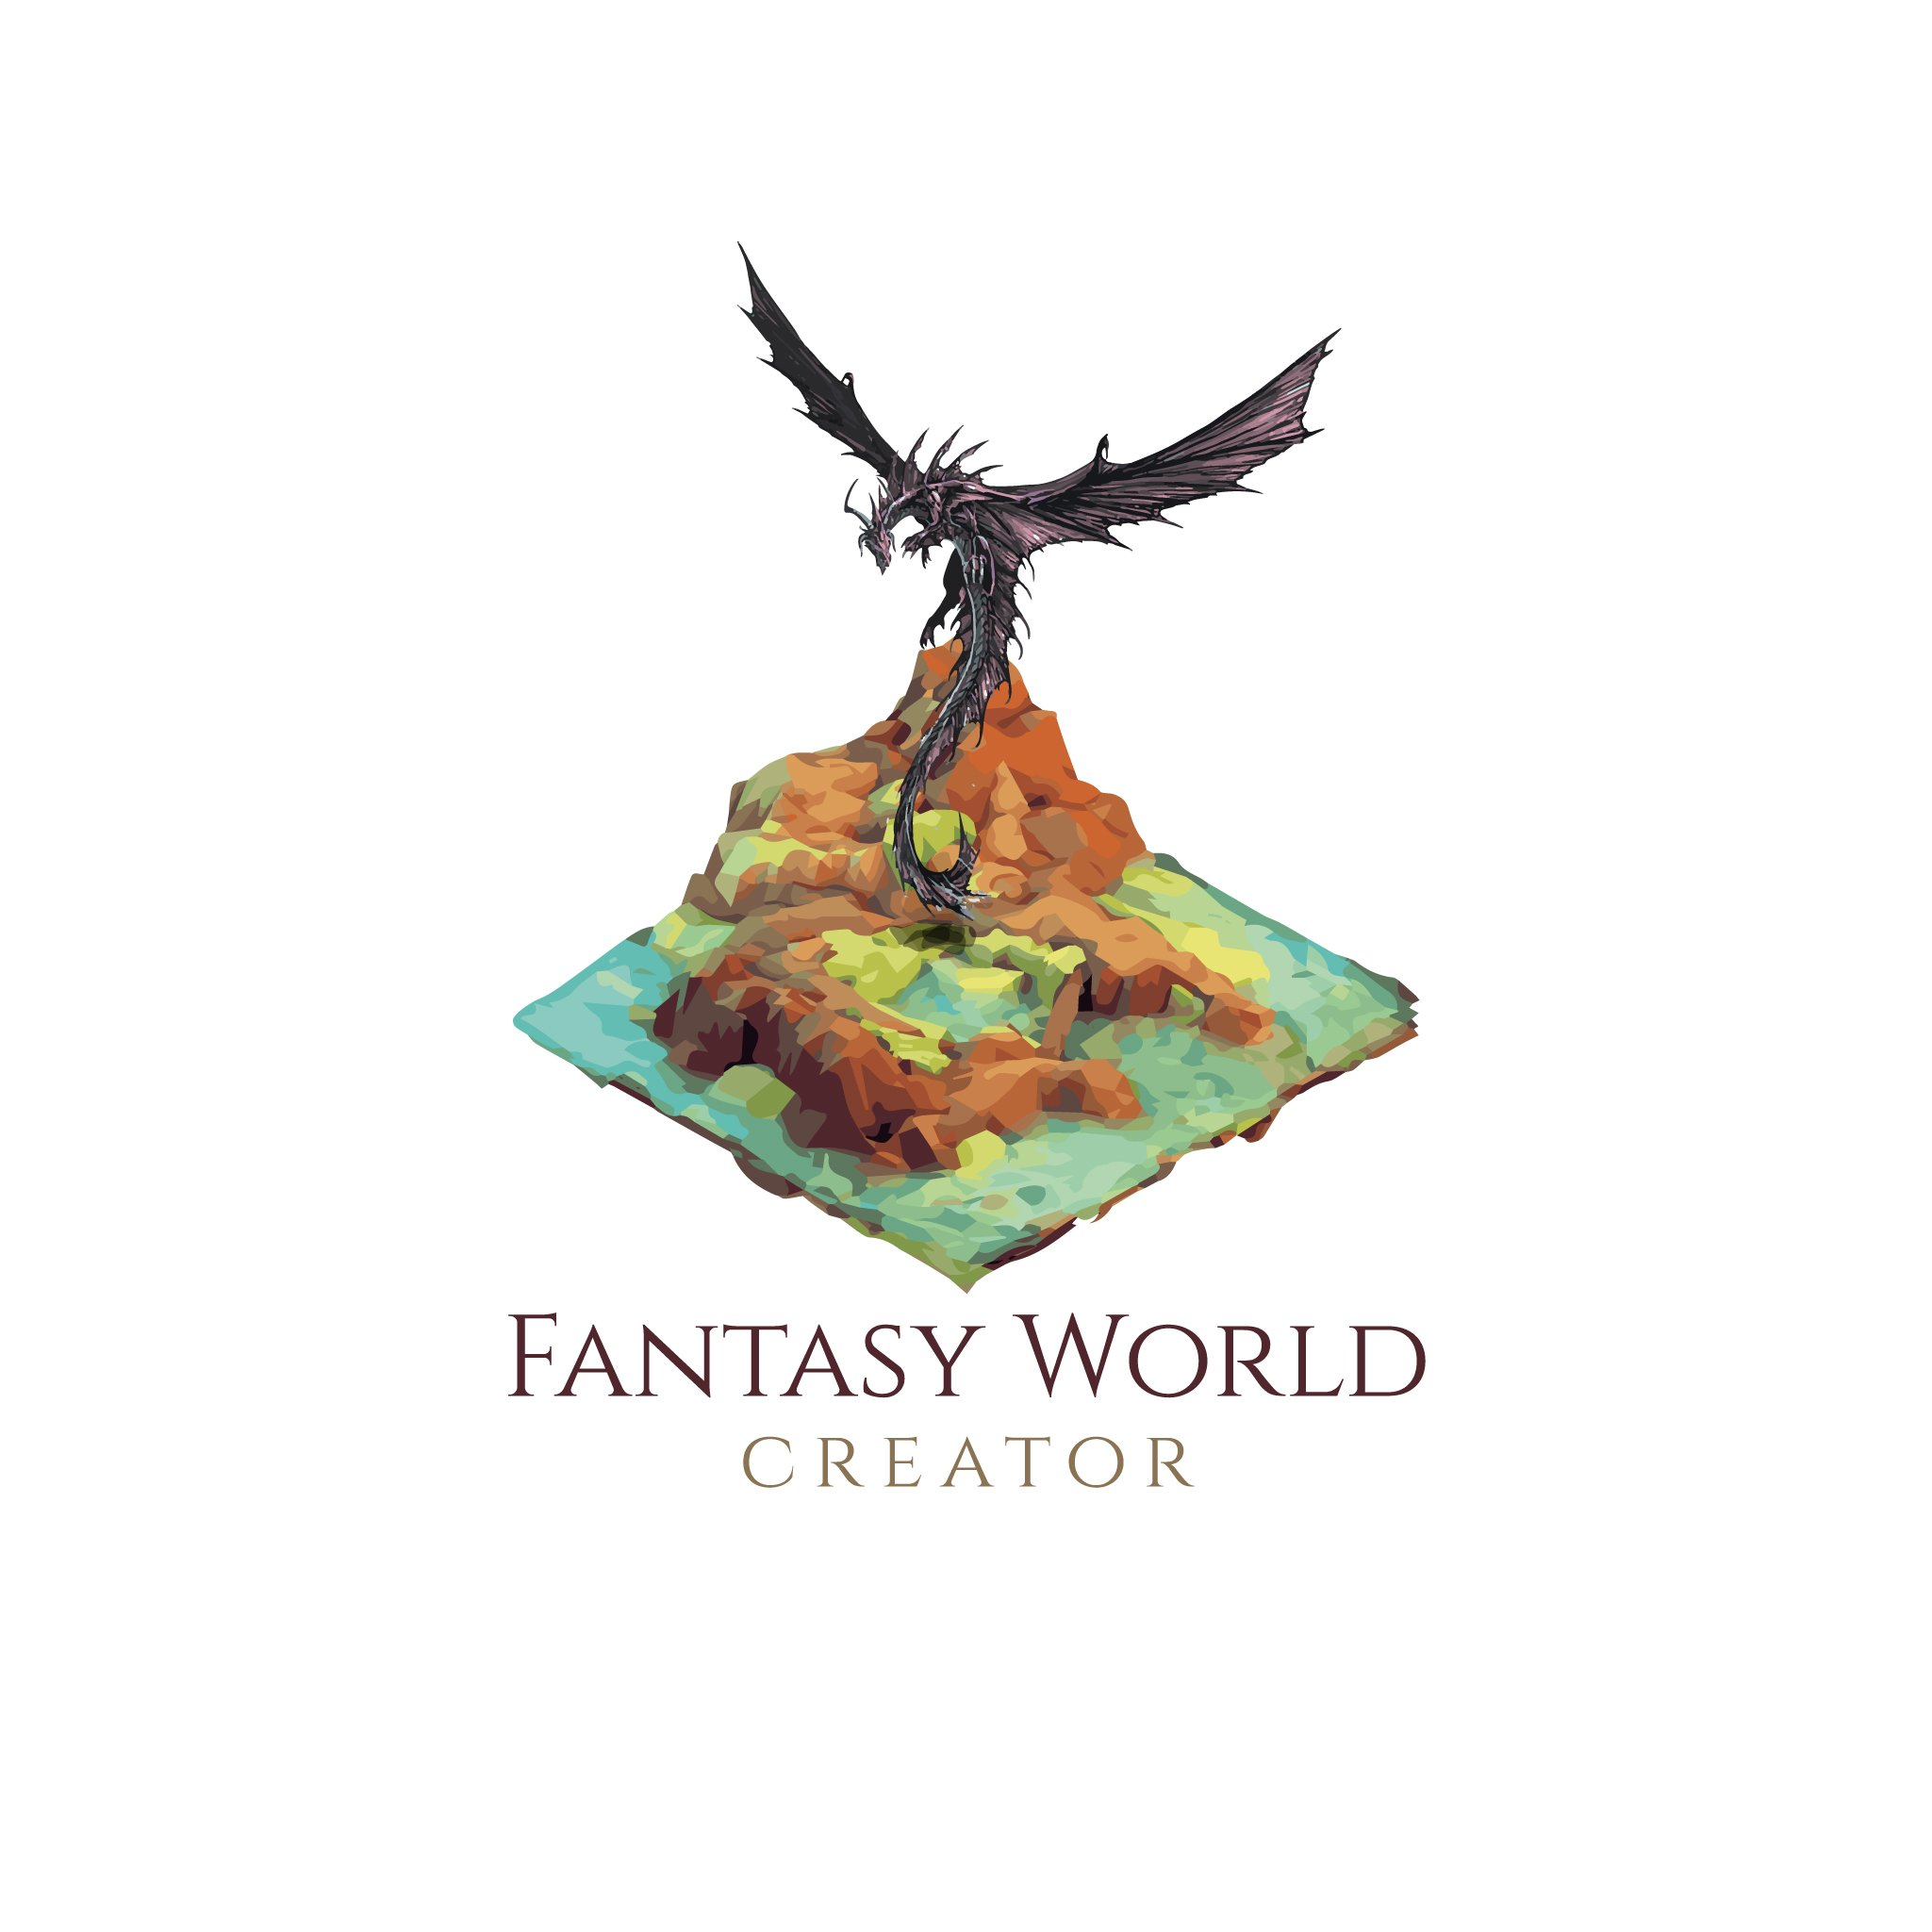 Fantasy World Creator tabletop terrain fantasy roleplaying game